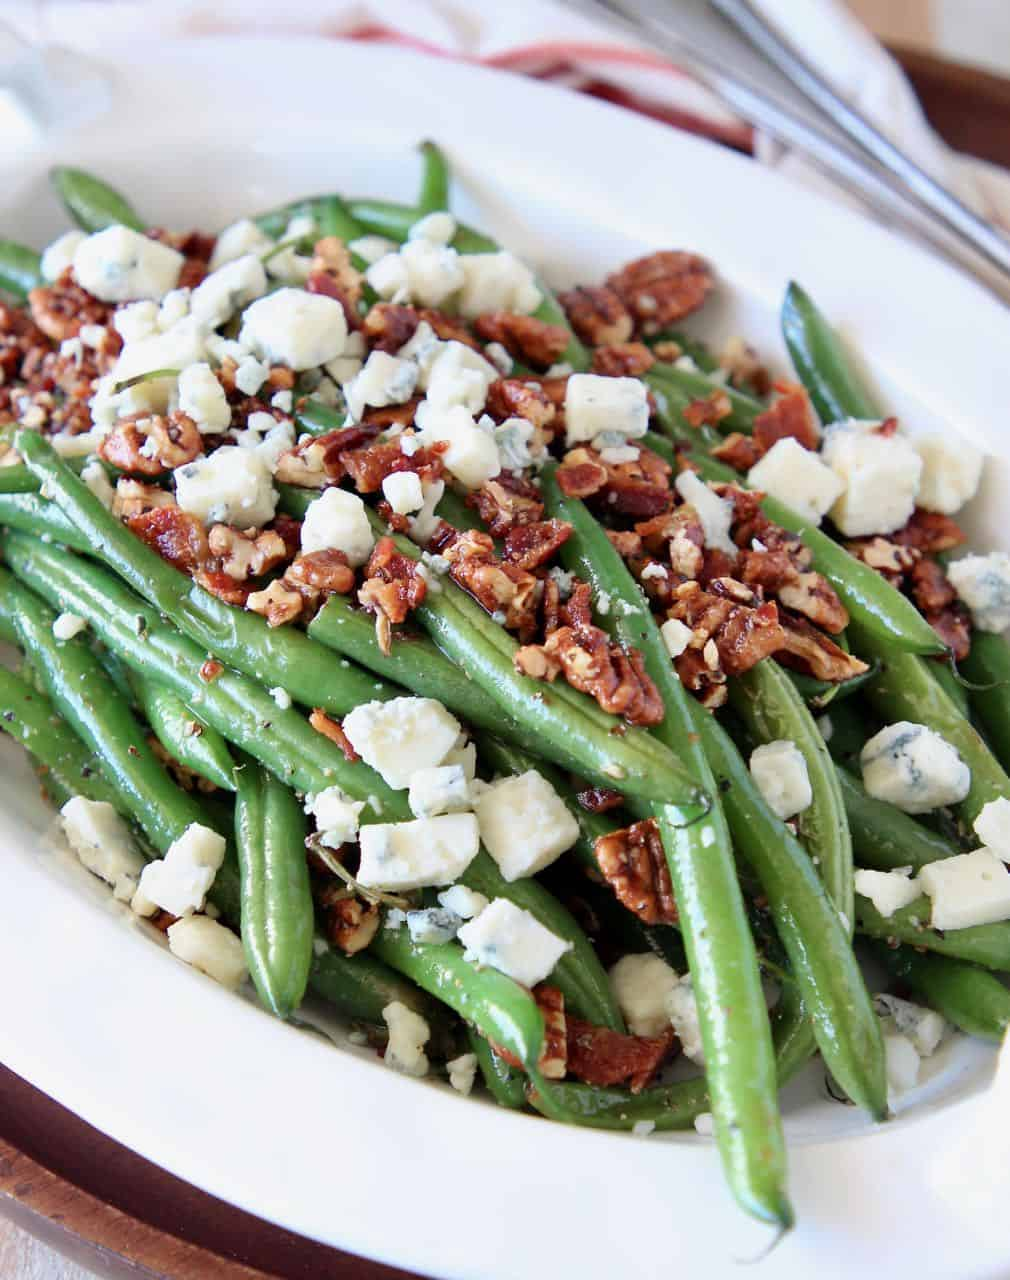 Fresh green beans in serving bowl, topped with pecans and blue cheese crumbles